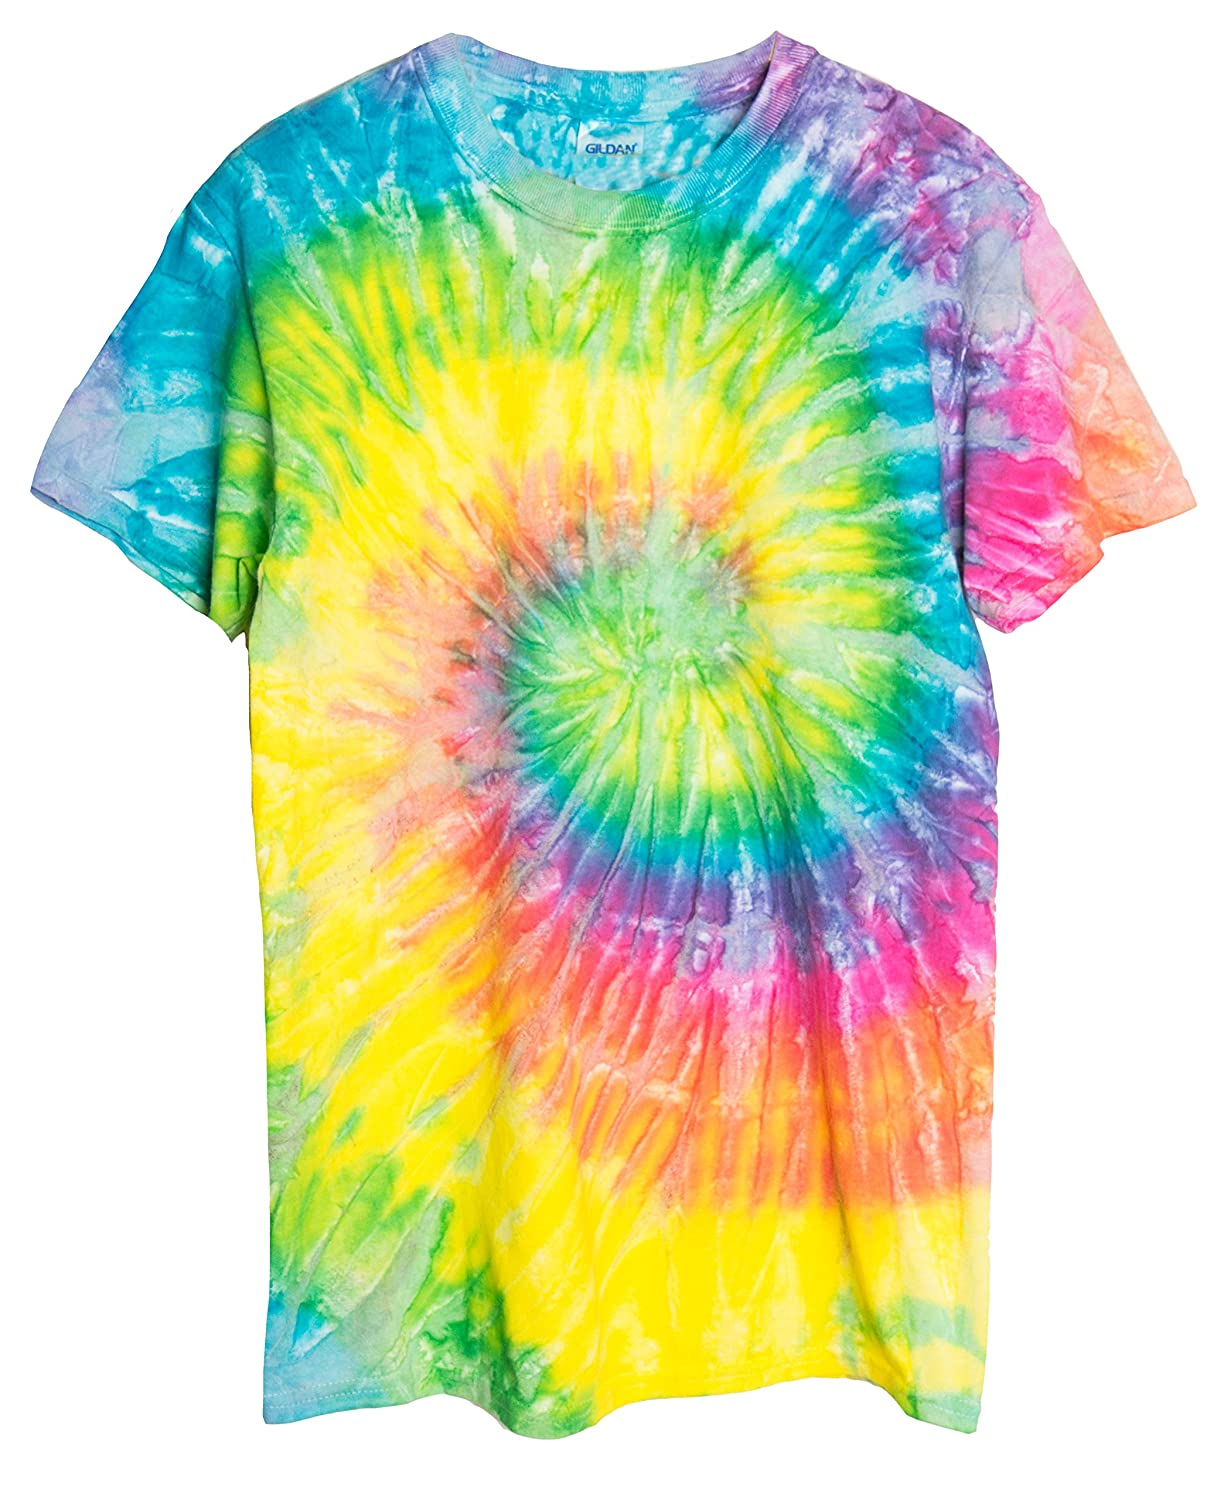 a1a4309e7dbd9 Tie Dye Shirts Amazon